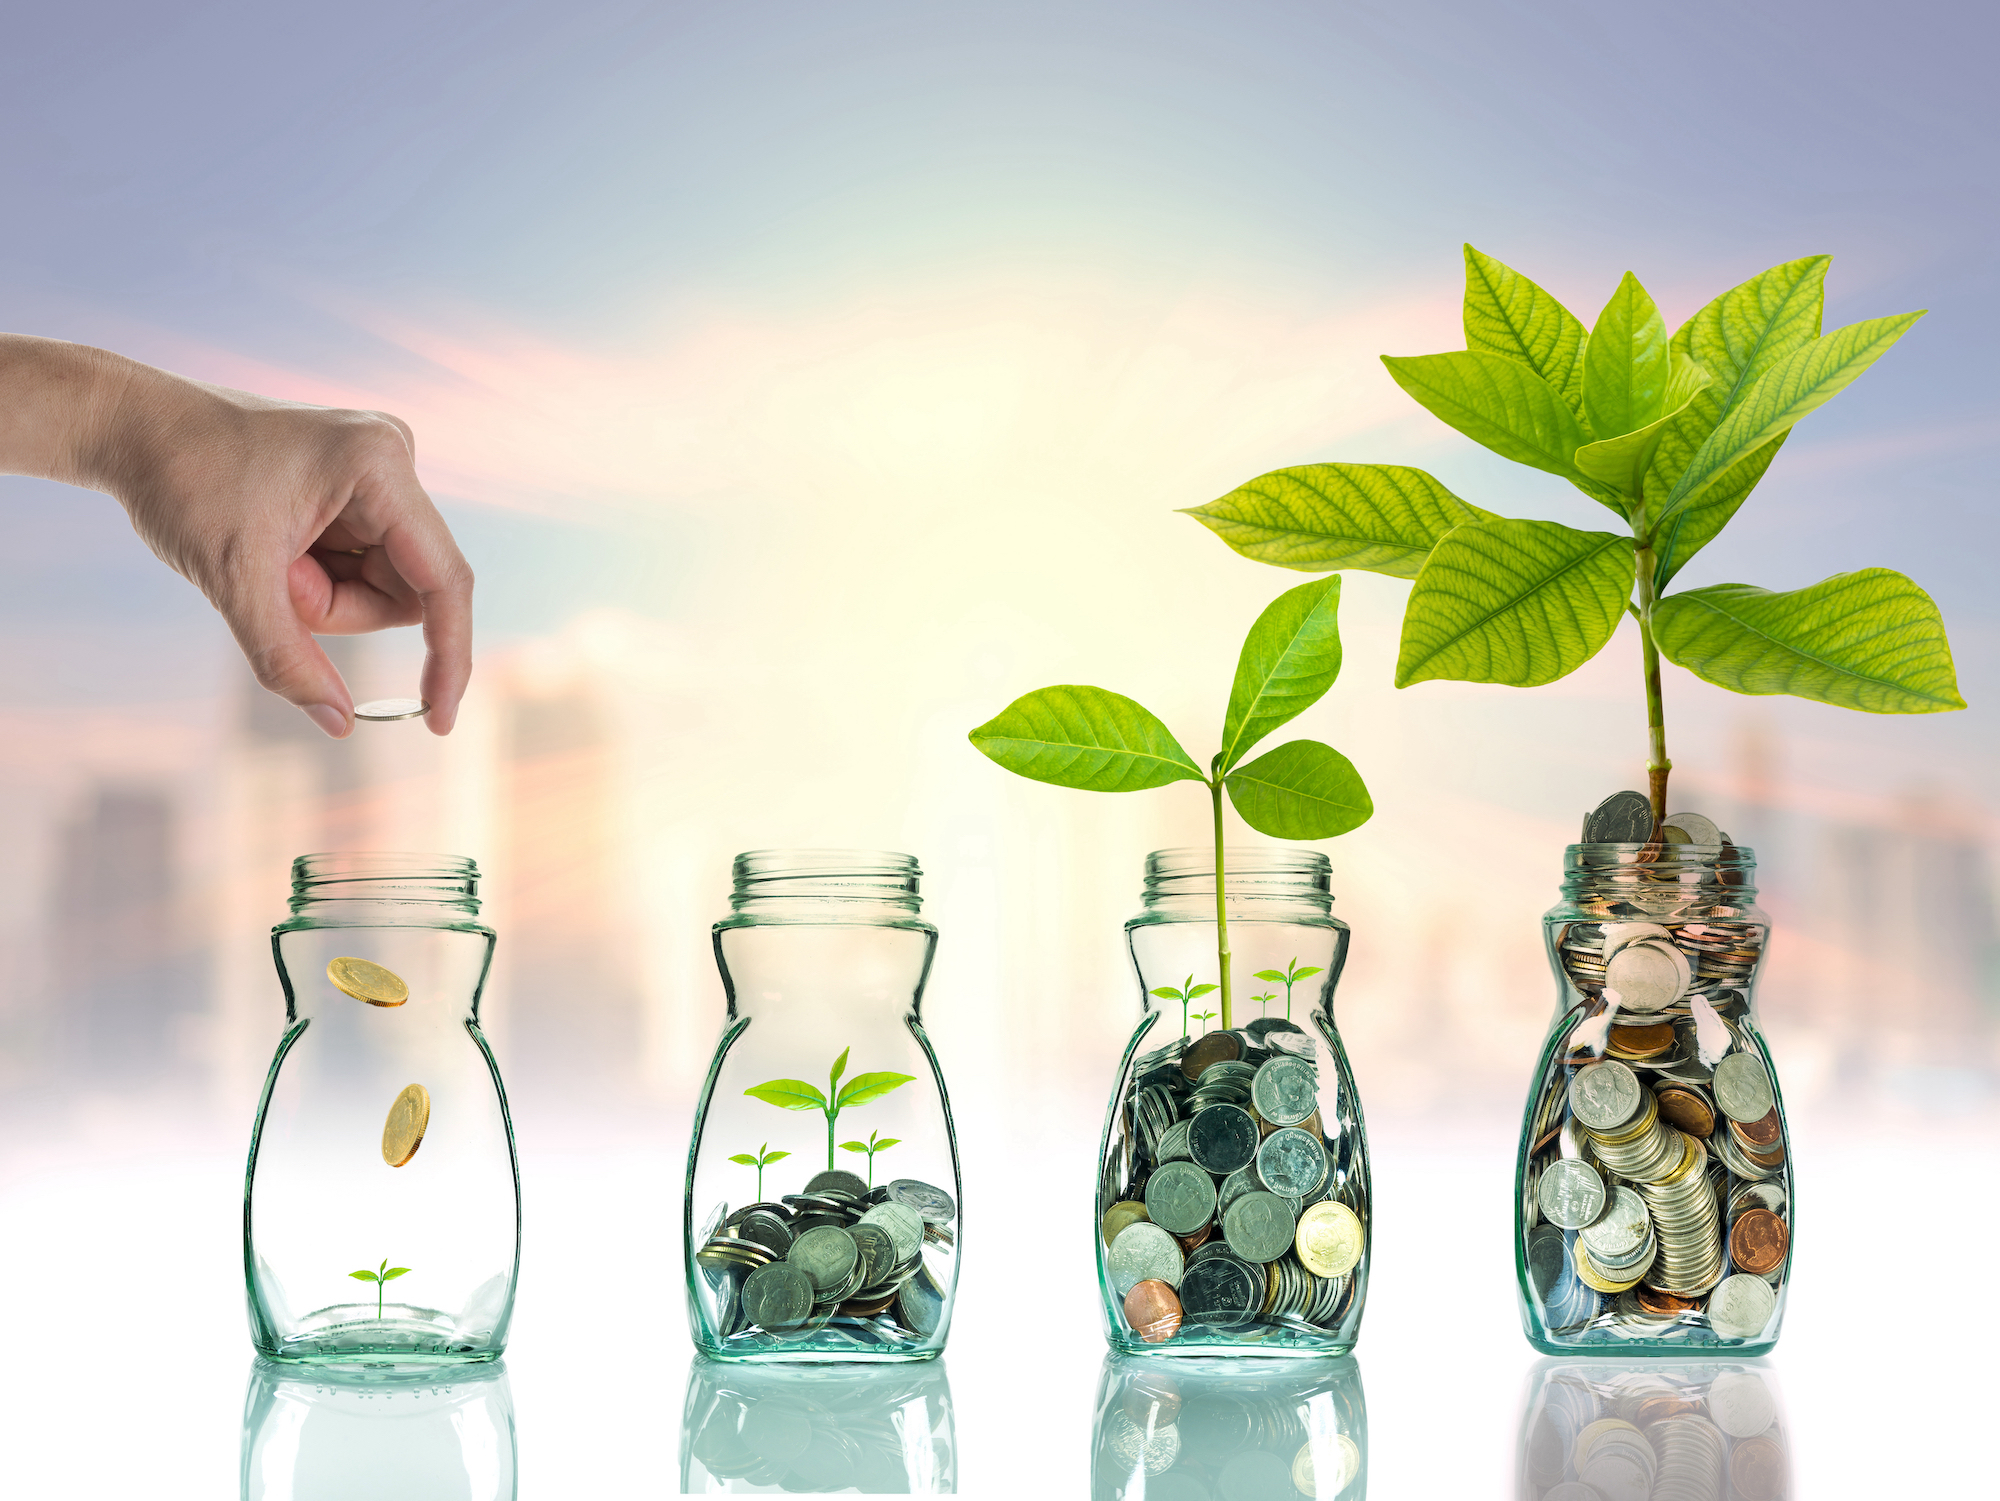 Hand,Putting,Mix,Coins,And,Seed,In,Clear,Bottle,On by Copyright (c) 2015 TZIDO SUN/Shutterstock.  No use without permission..